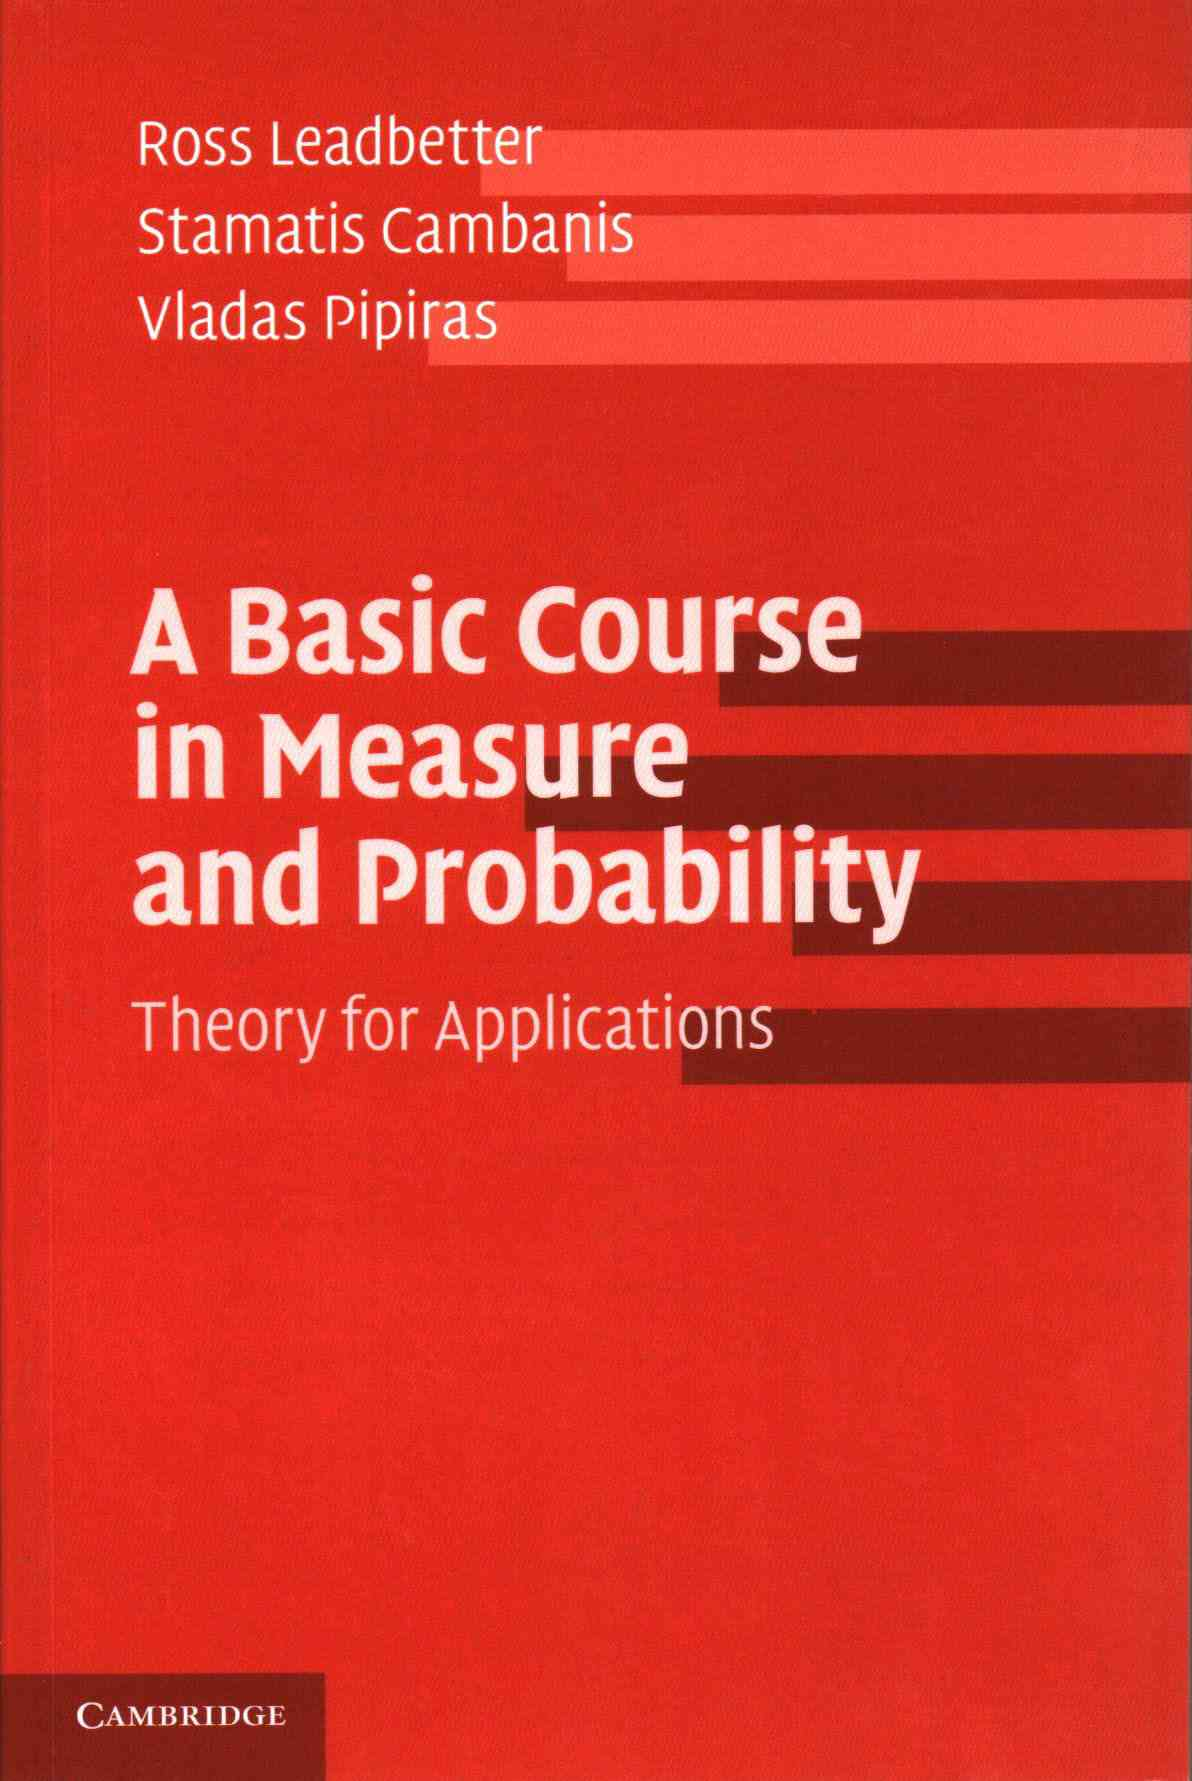 A Basic Course in Measure and Probability By Leadbetter, Ross/ Cambanis, Stamatis/ Pipiras, Vladas